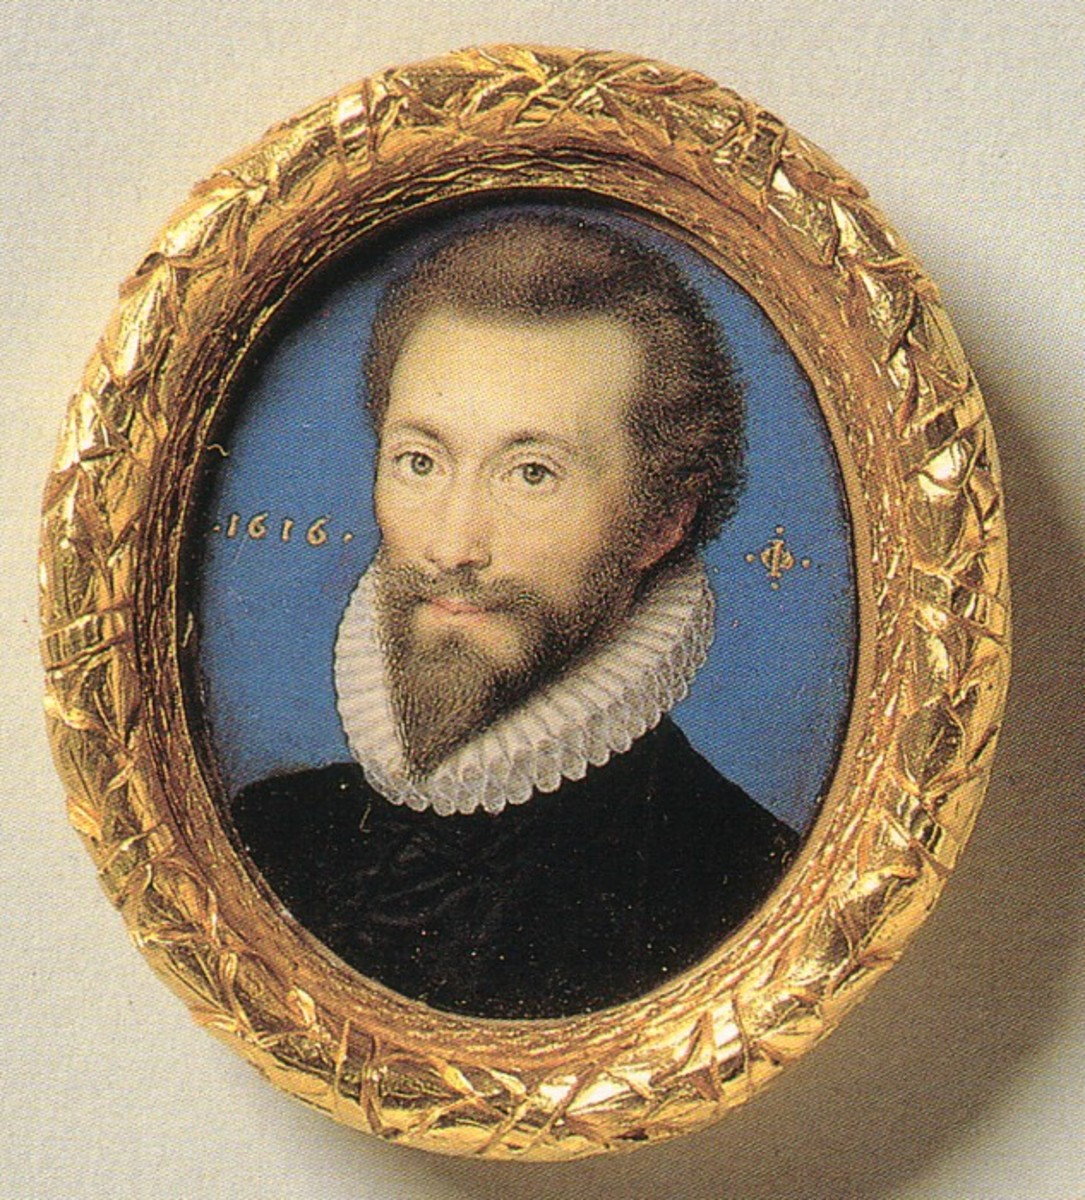 John Donne (22 January 1572 – 31 March 1631) was an English poet and a cleric in the Church of England.